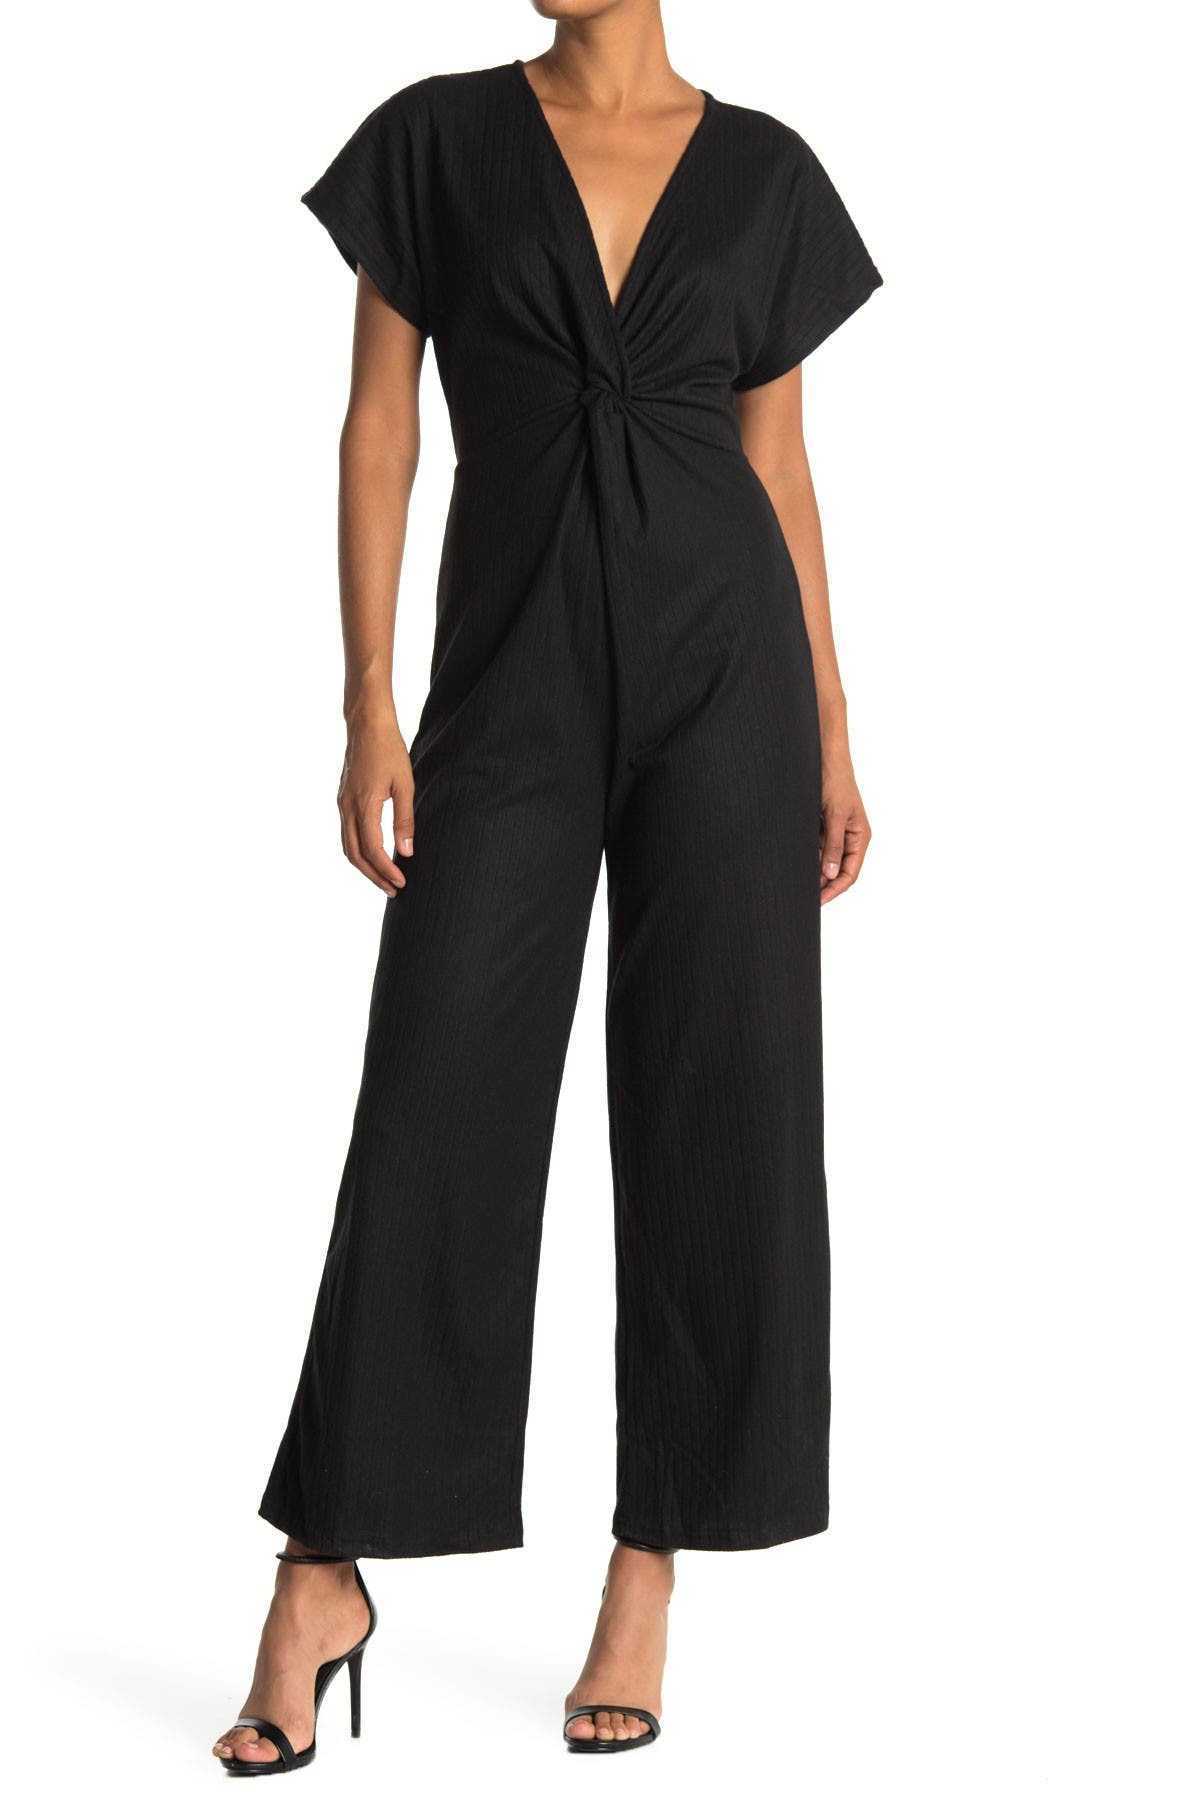 Image of Angie Rib Knit Twist Front Jumpsuit